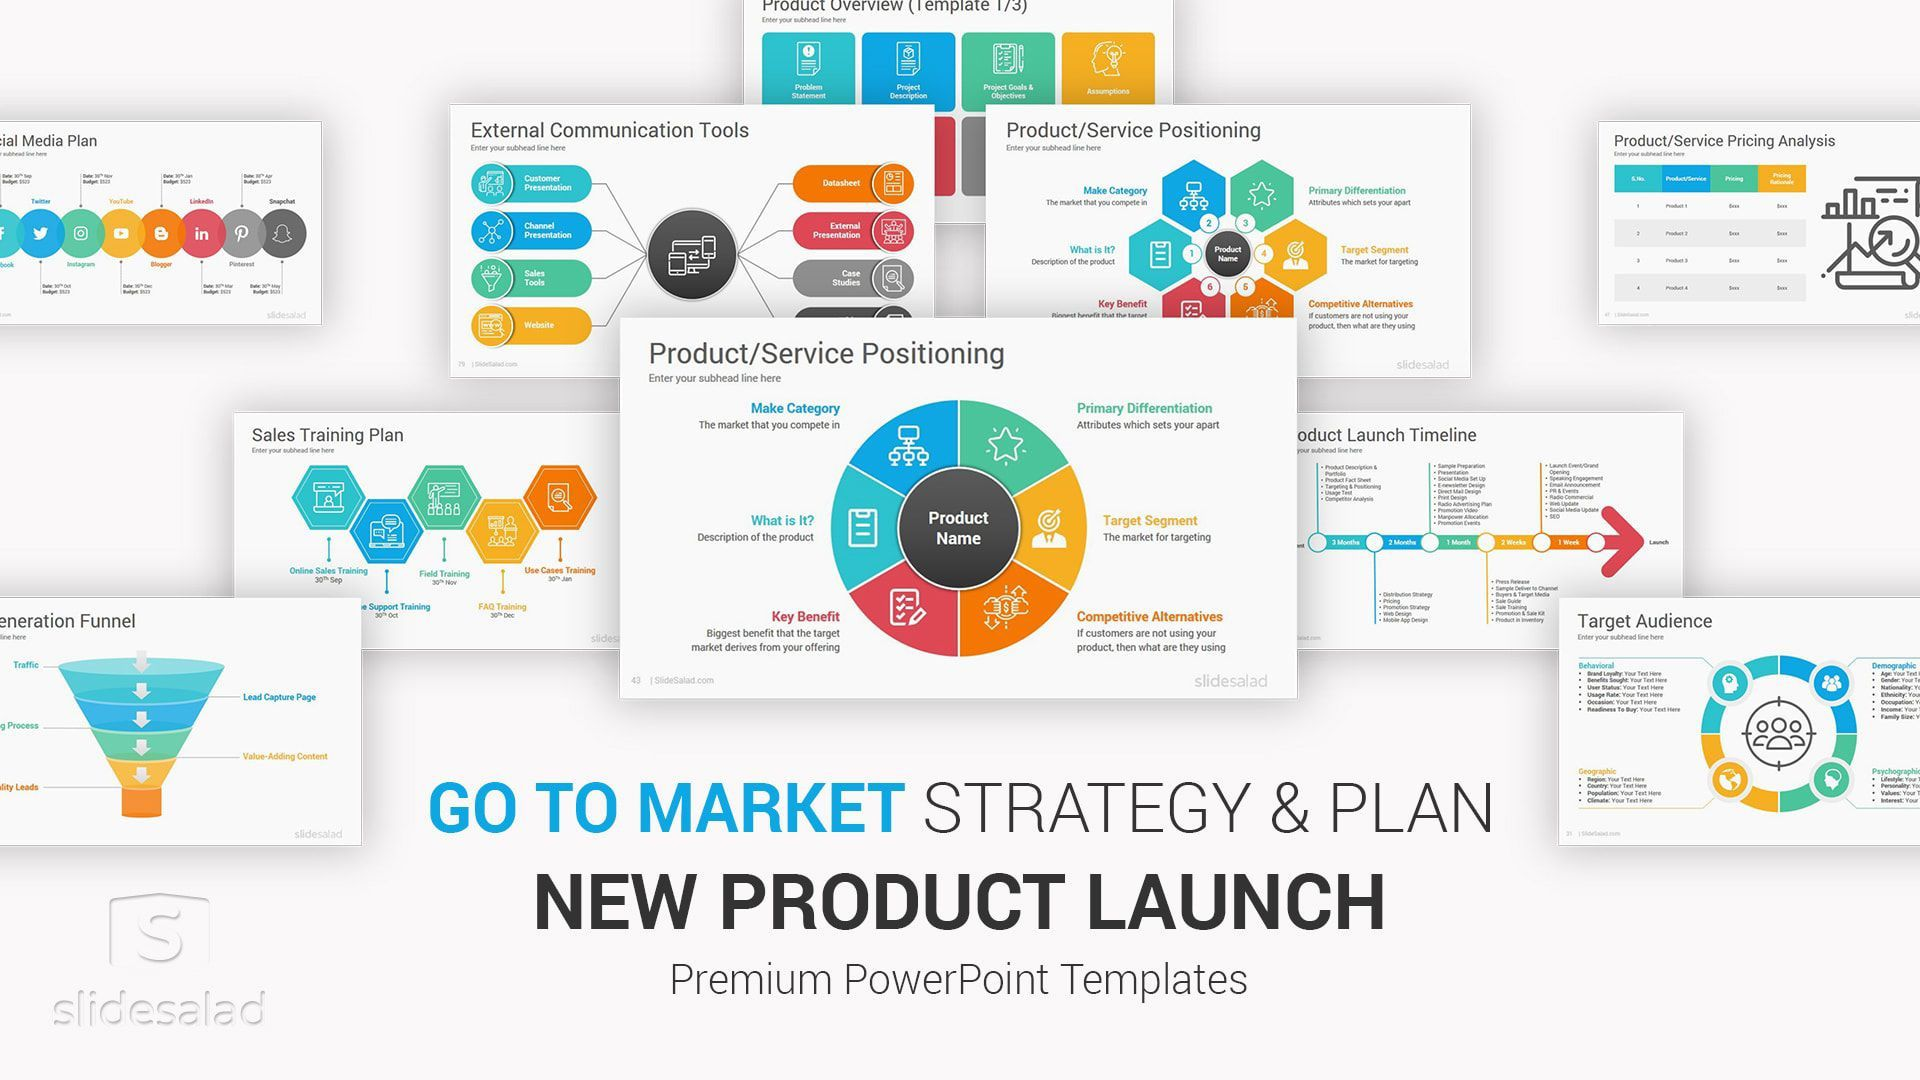 007 Amazing Product Launch Plan Template Free Highest Quality  Powerpoint Ppt ExcelFull